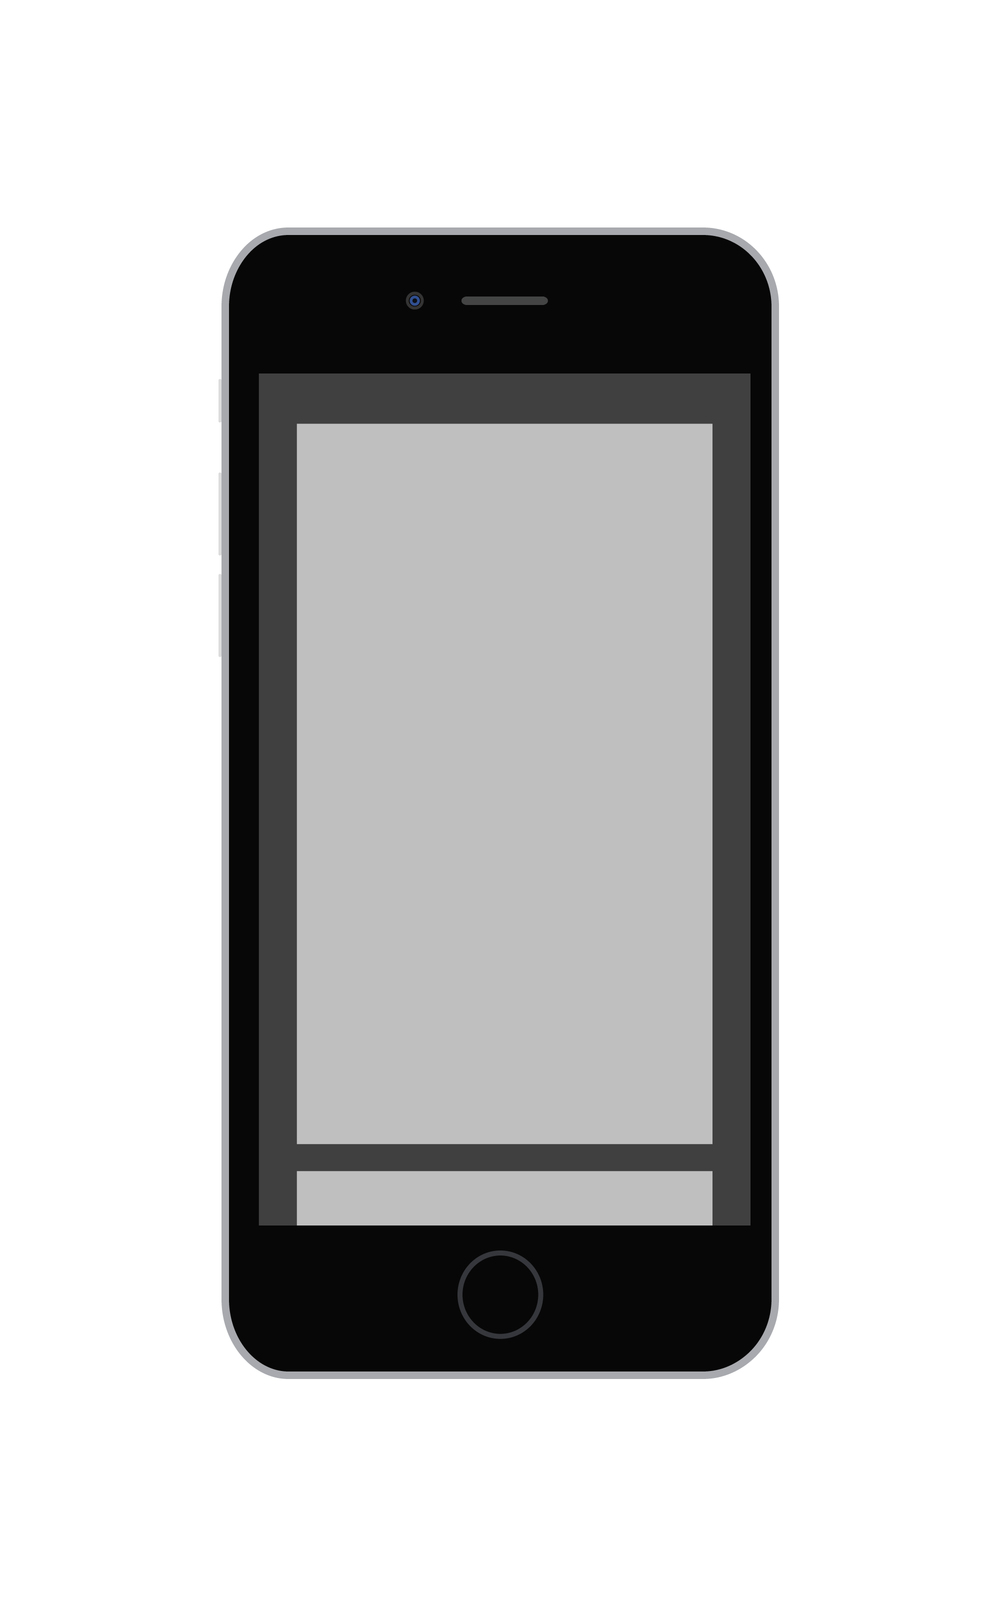 iPhone Mock-Up-02.jpg